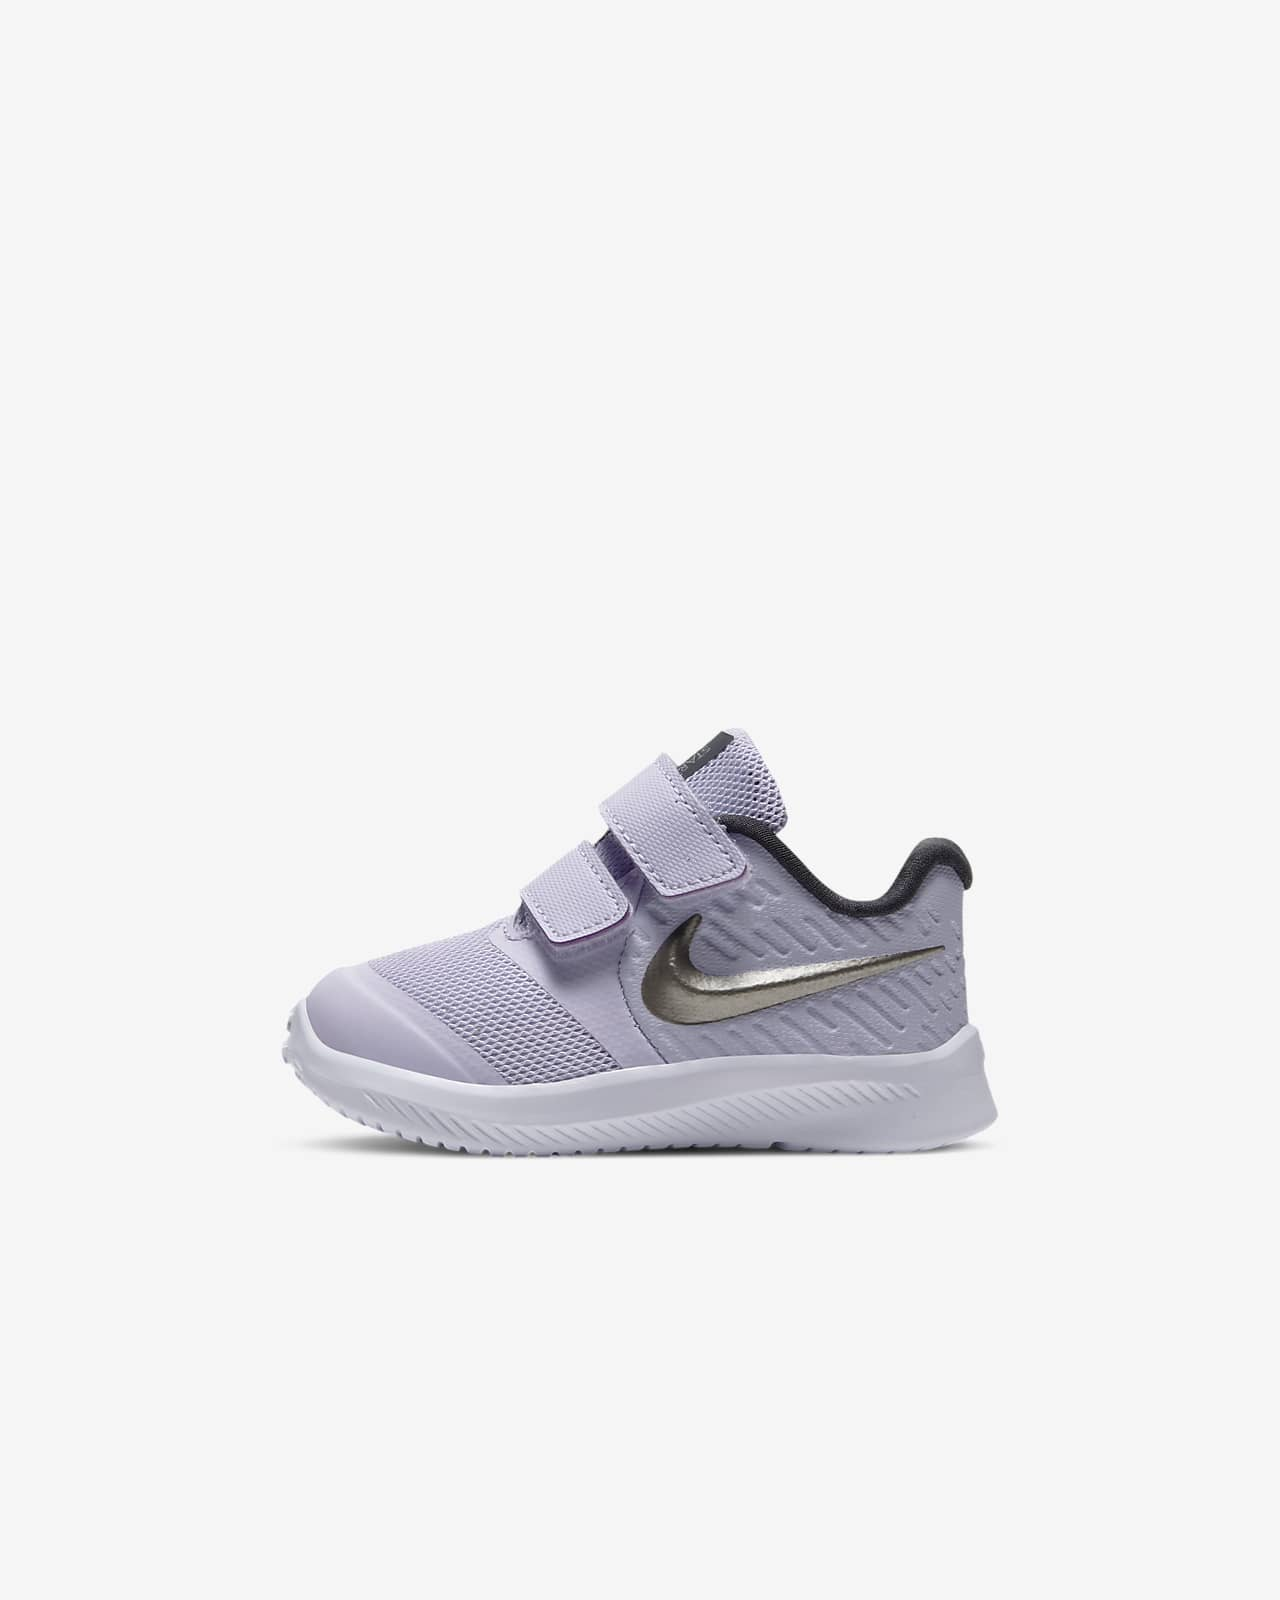 Nike Star Runner 2 Baby & Toddler Shoe